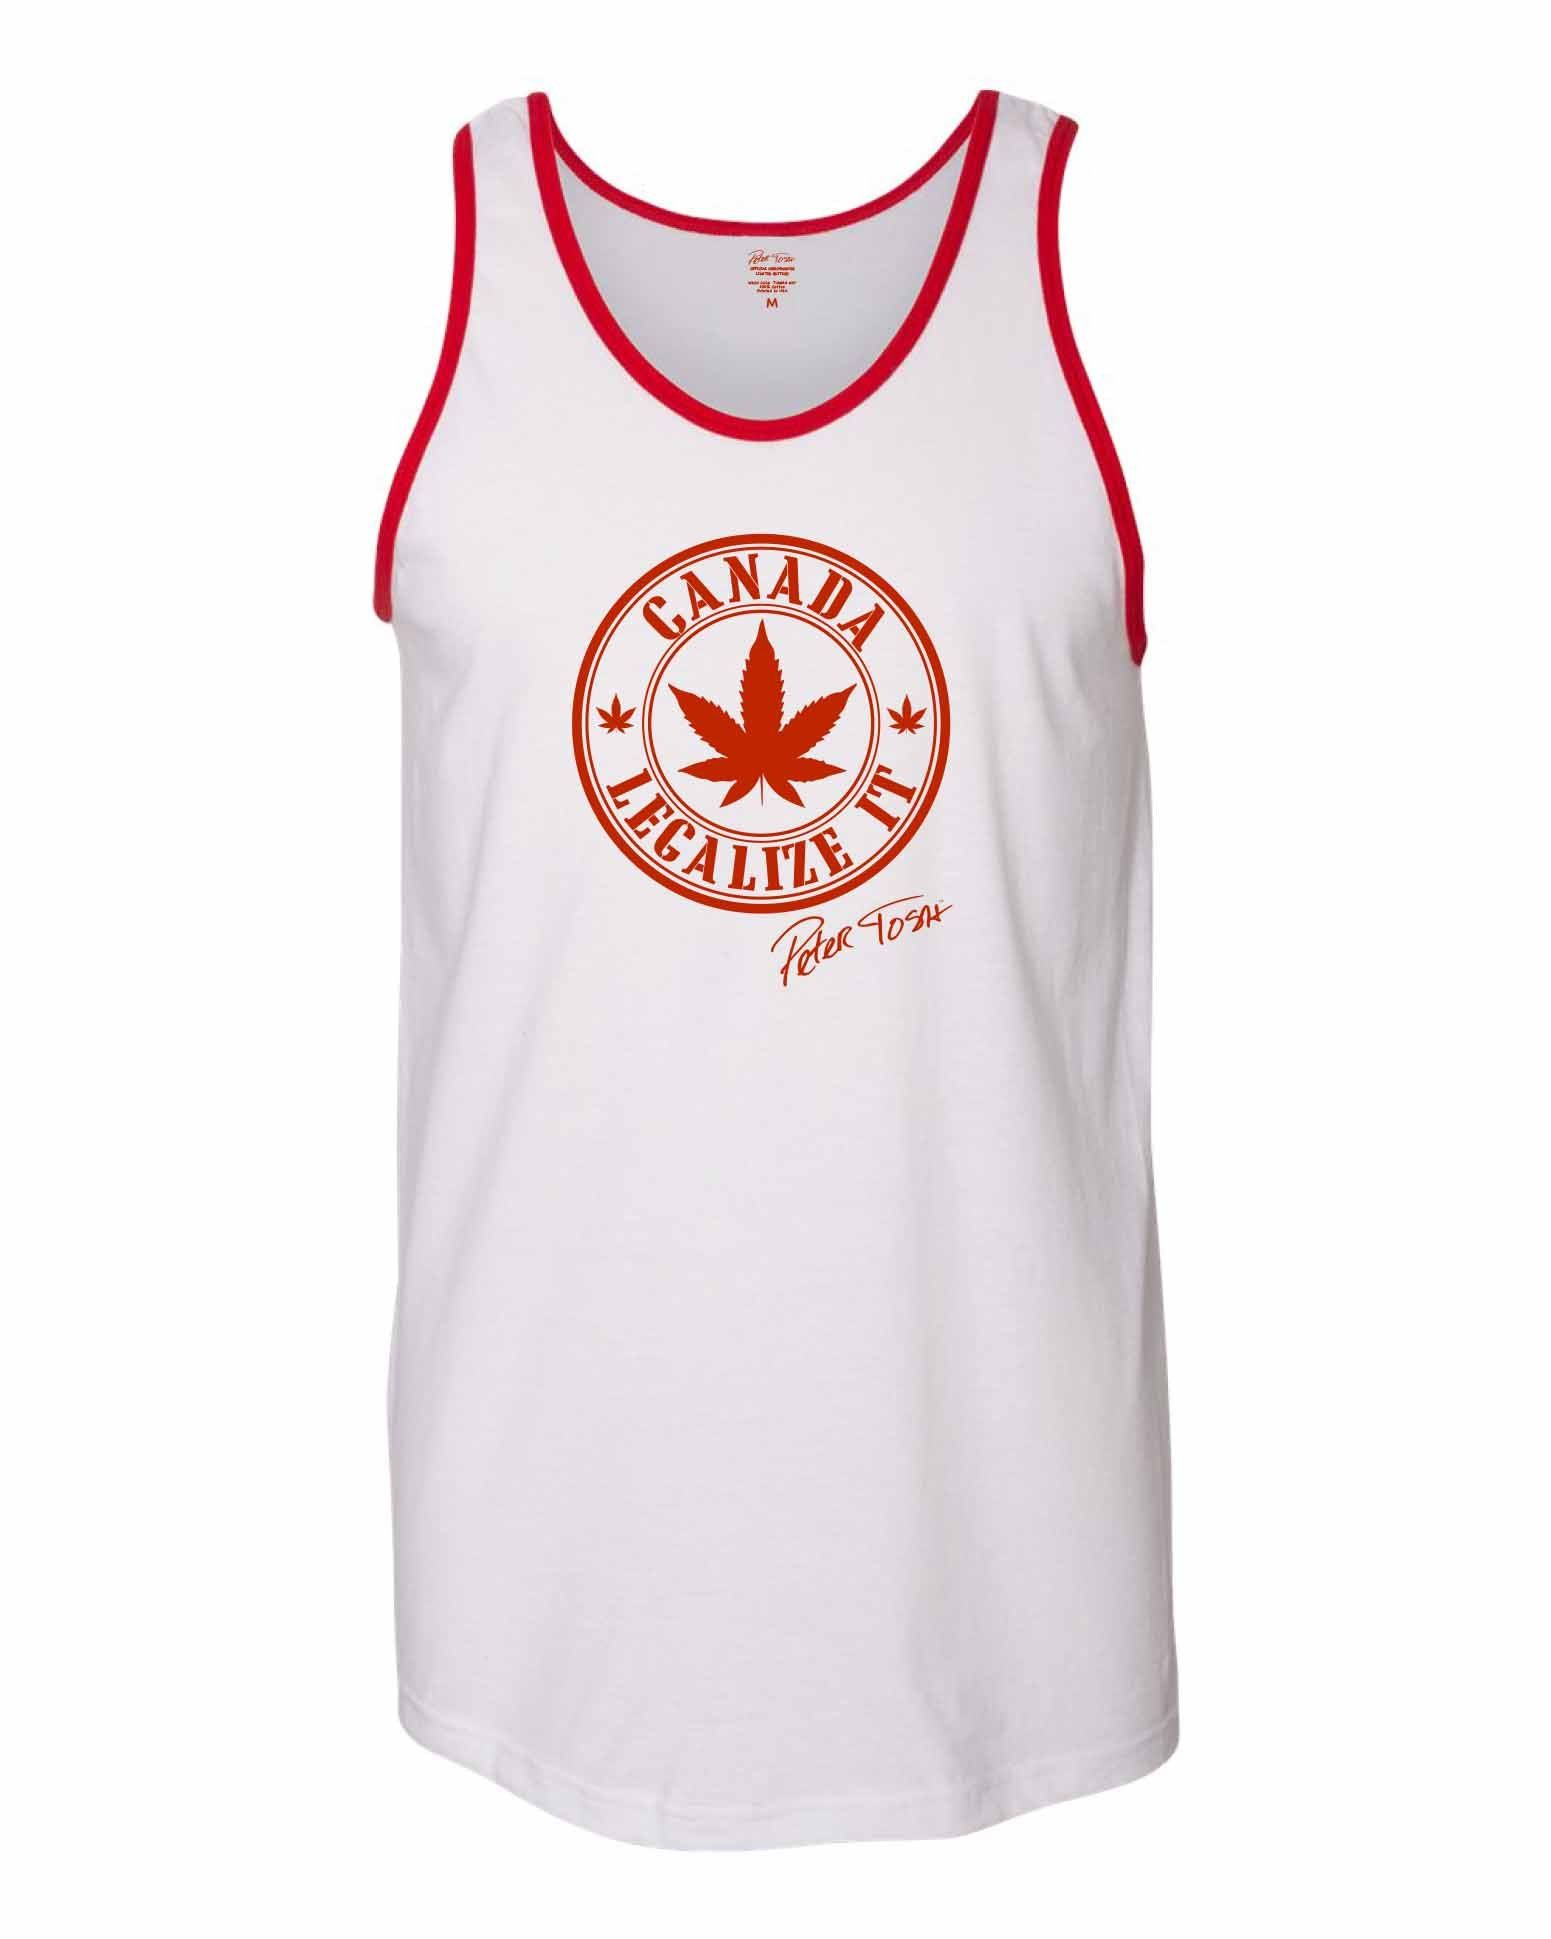 Peter Tosh Legalize It Raglan Tee  be6d391b2a73